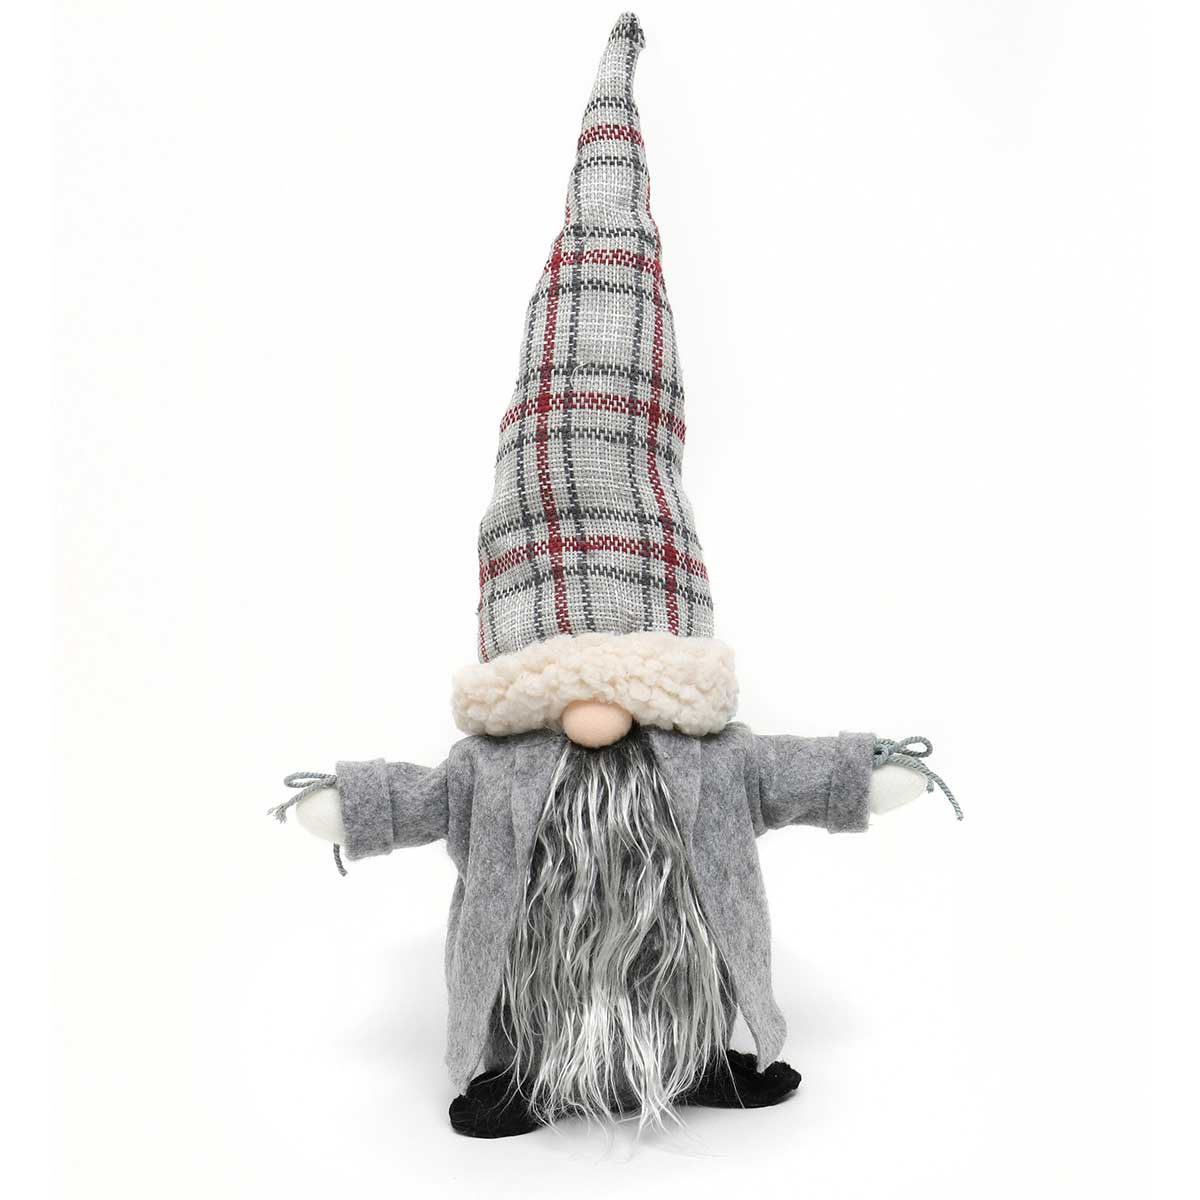 NILS GNOME WITH PLAID HAT AND GREY